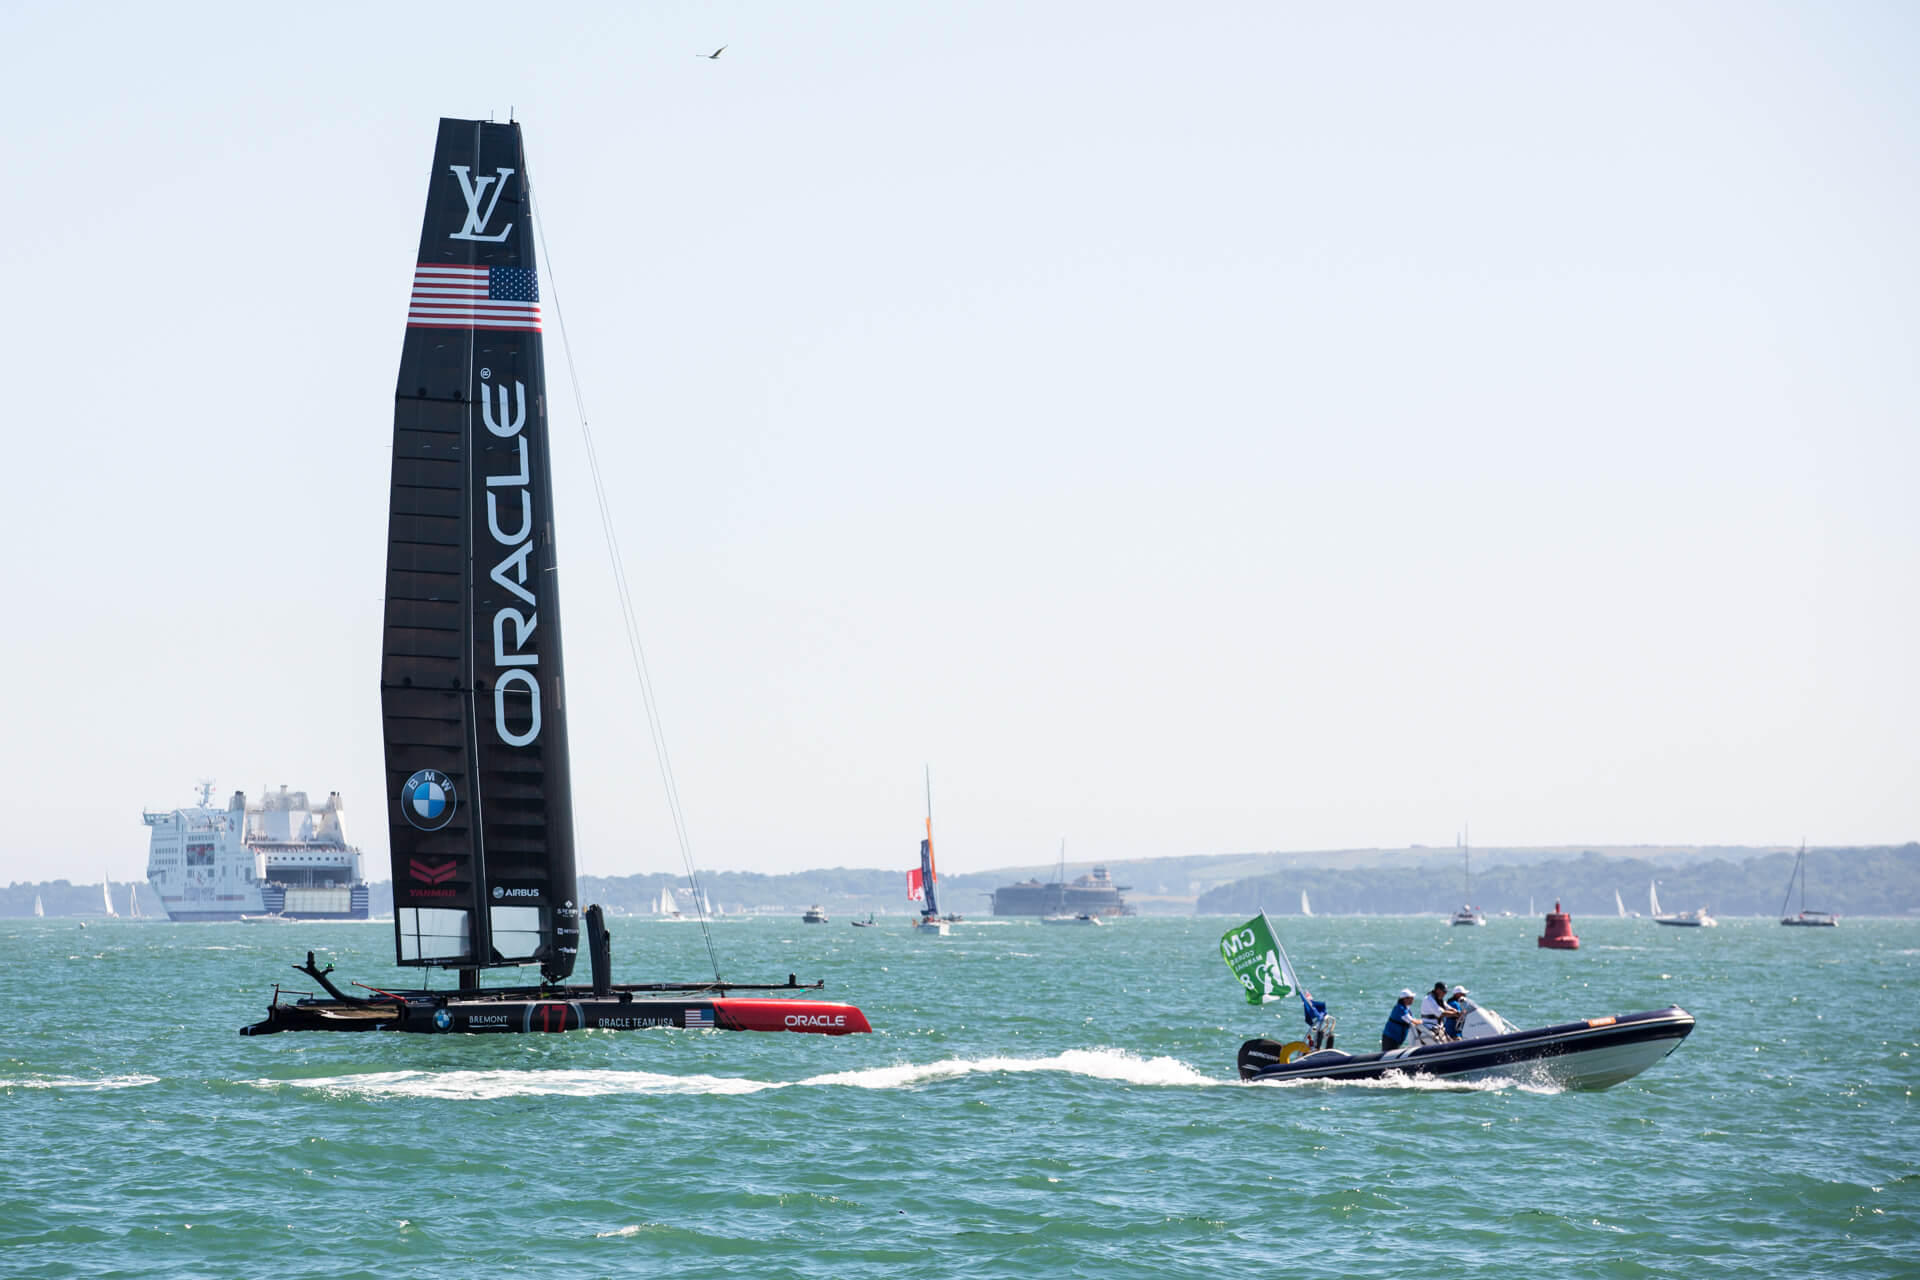 America's Cup, America Cup, World Series, Sailing, Sea, Oracle, Louis Vuitton Race, Boat, Yacht, Summer, Photography, Film, Agency, Marketing, WeAreShuffle, Production, Waves, Portsmouth